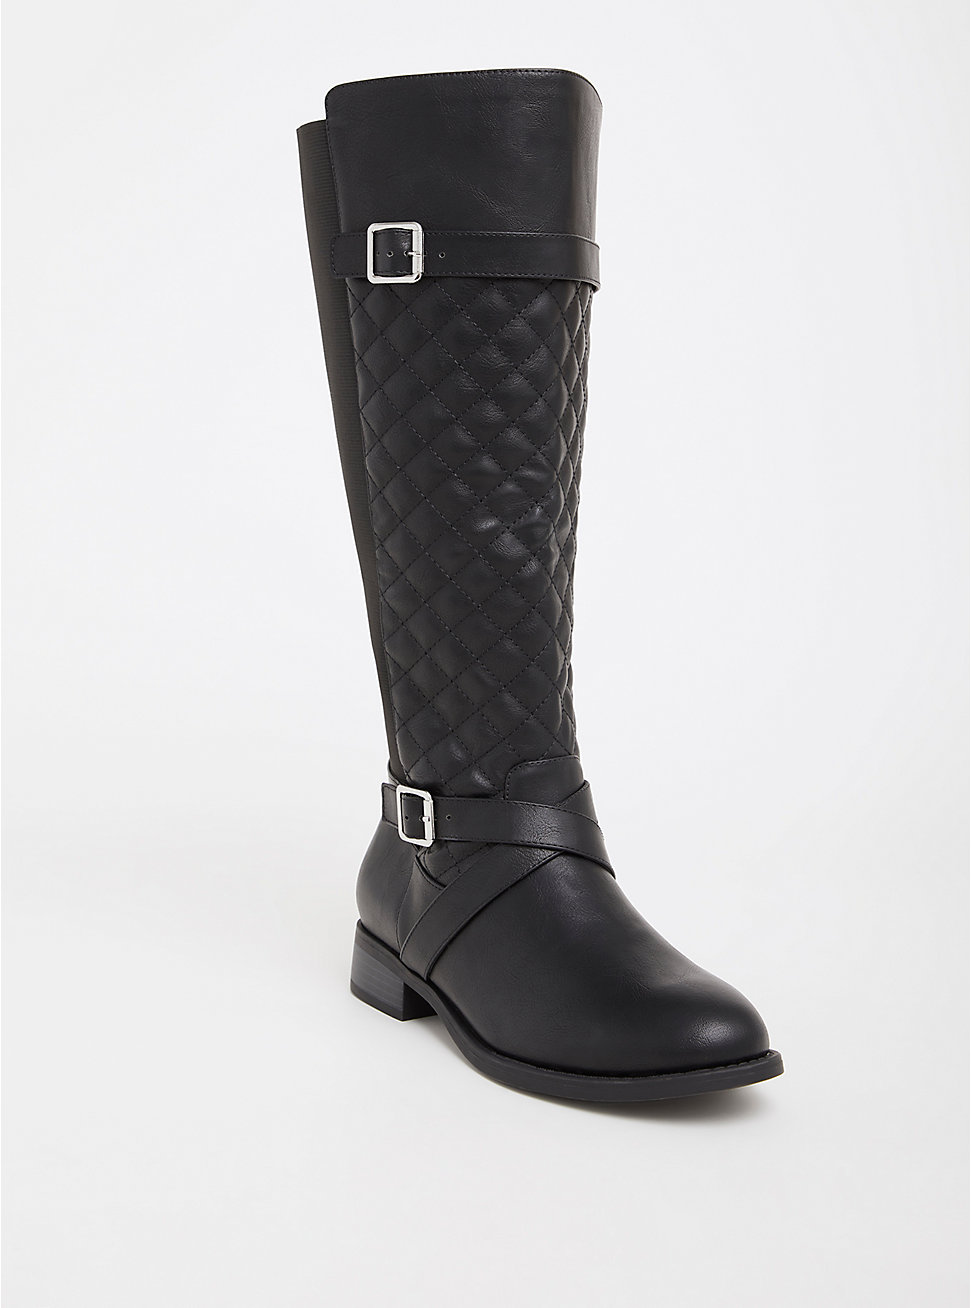 Black Quilted Faux Leather Knee Boot - Torrid ($74.90 CAD)